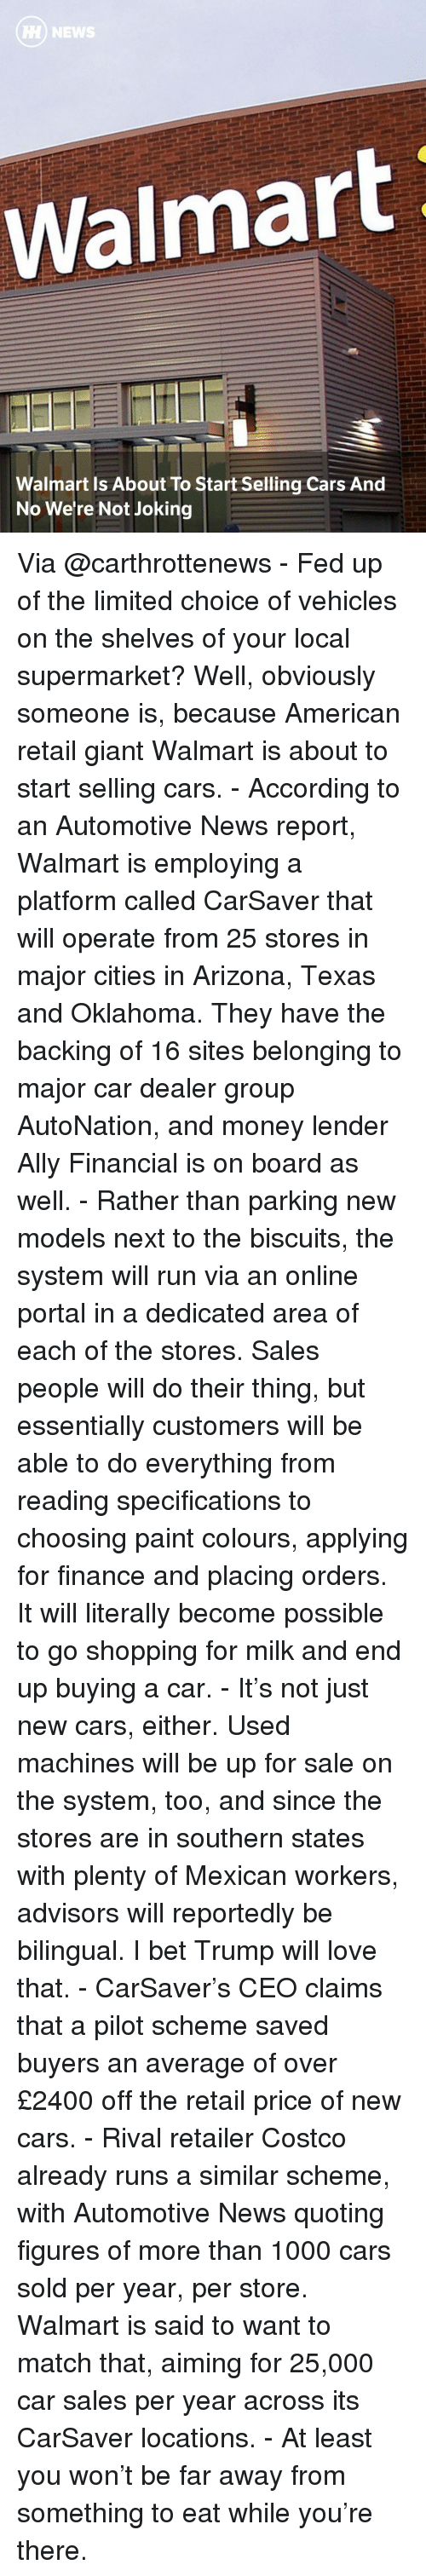 Automotive: H NEW  almart Is About To Start Selling Cars And  No We're Not Joking Via @carthrottenews - Fed up of the limited choice of vehicles on the shelves of your local supermarket? Well, obviously someone is, because American retail giant Walmart is about to start selling cars. - According to an Automotive News report, Walmart is employing a platform called CarSaver that will operate from 25 stores in major cities in Arizona, Texas and Oklahoma. They have the backing of 16 sites belonging to major car dealer group AutoNation, and money lender Ally Financial is on board as well. - Rather than parking new models next to the biscuits, the system will run via an online portal in a dedicated area of each of the stores. Sales people will do their thing, but essentially customers will be able to do everything from reading specifications to choosing paint colours, applying for finance and placing orders. It will literally become possible to go shopping for milk and end up buying a car. - It's not just new cars, either. Used machines will be up for sale on the system, too, and since the stores are in southern states with plenty of Mexican workers, advisors will reportedly be bilingual. I bet Trump will love that. - CarSaver's CEO claims that a pilot scheme saved buyers an average of over £2400 off the retail price of new cars. - Rival retailer Costco already runs a similar scheme, with Automotive News quoting figures of more than 1000 cars sold per year, per store. Walmart is said to want to match that, aiming for 25,000 car sales per year across its CarSaver locations. - At least you won't be far away from something to eat while you're there.